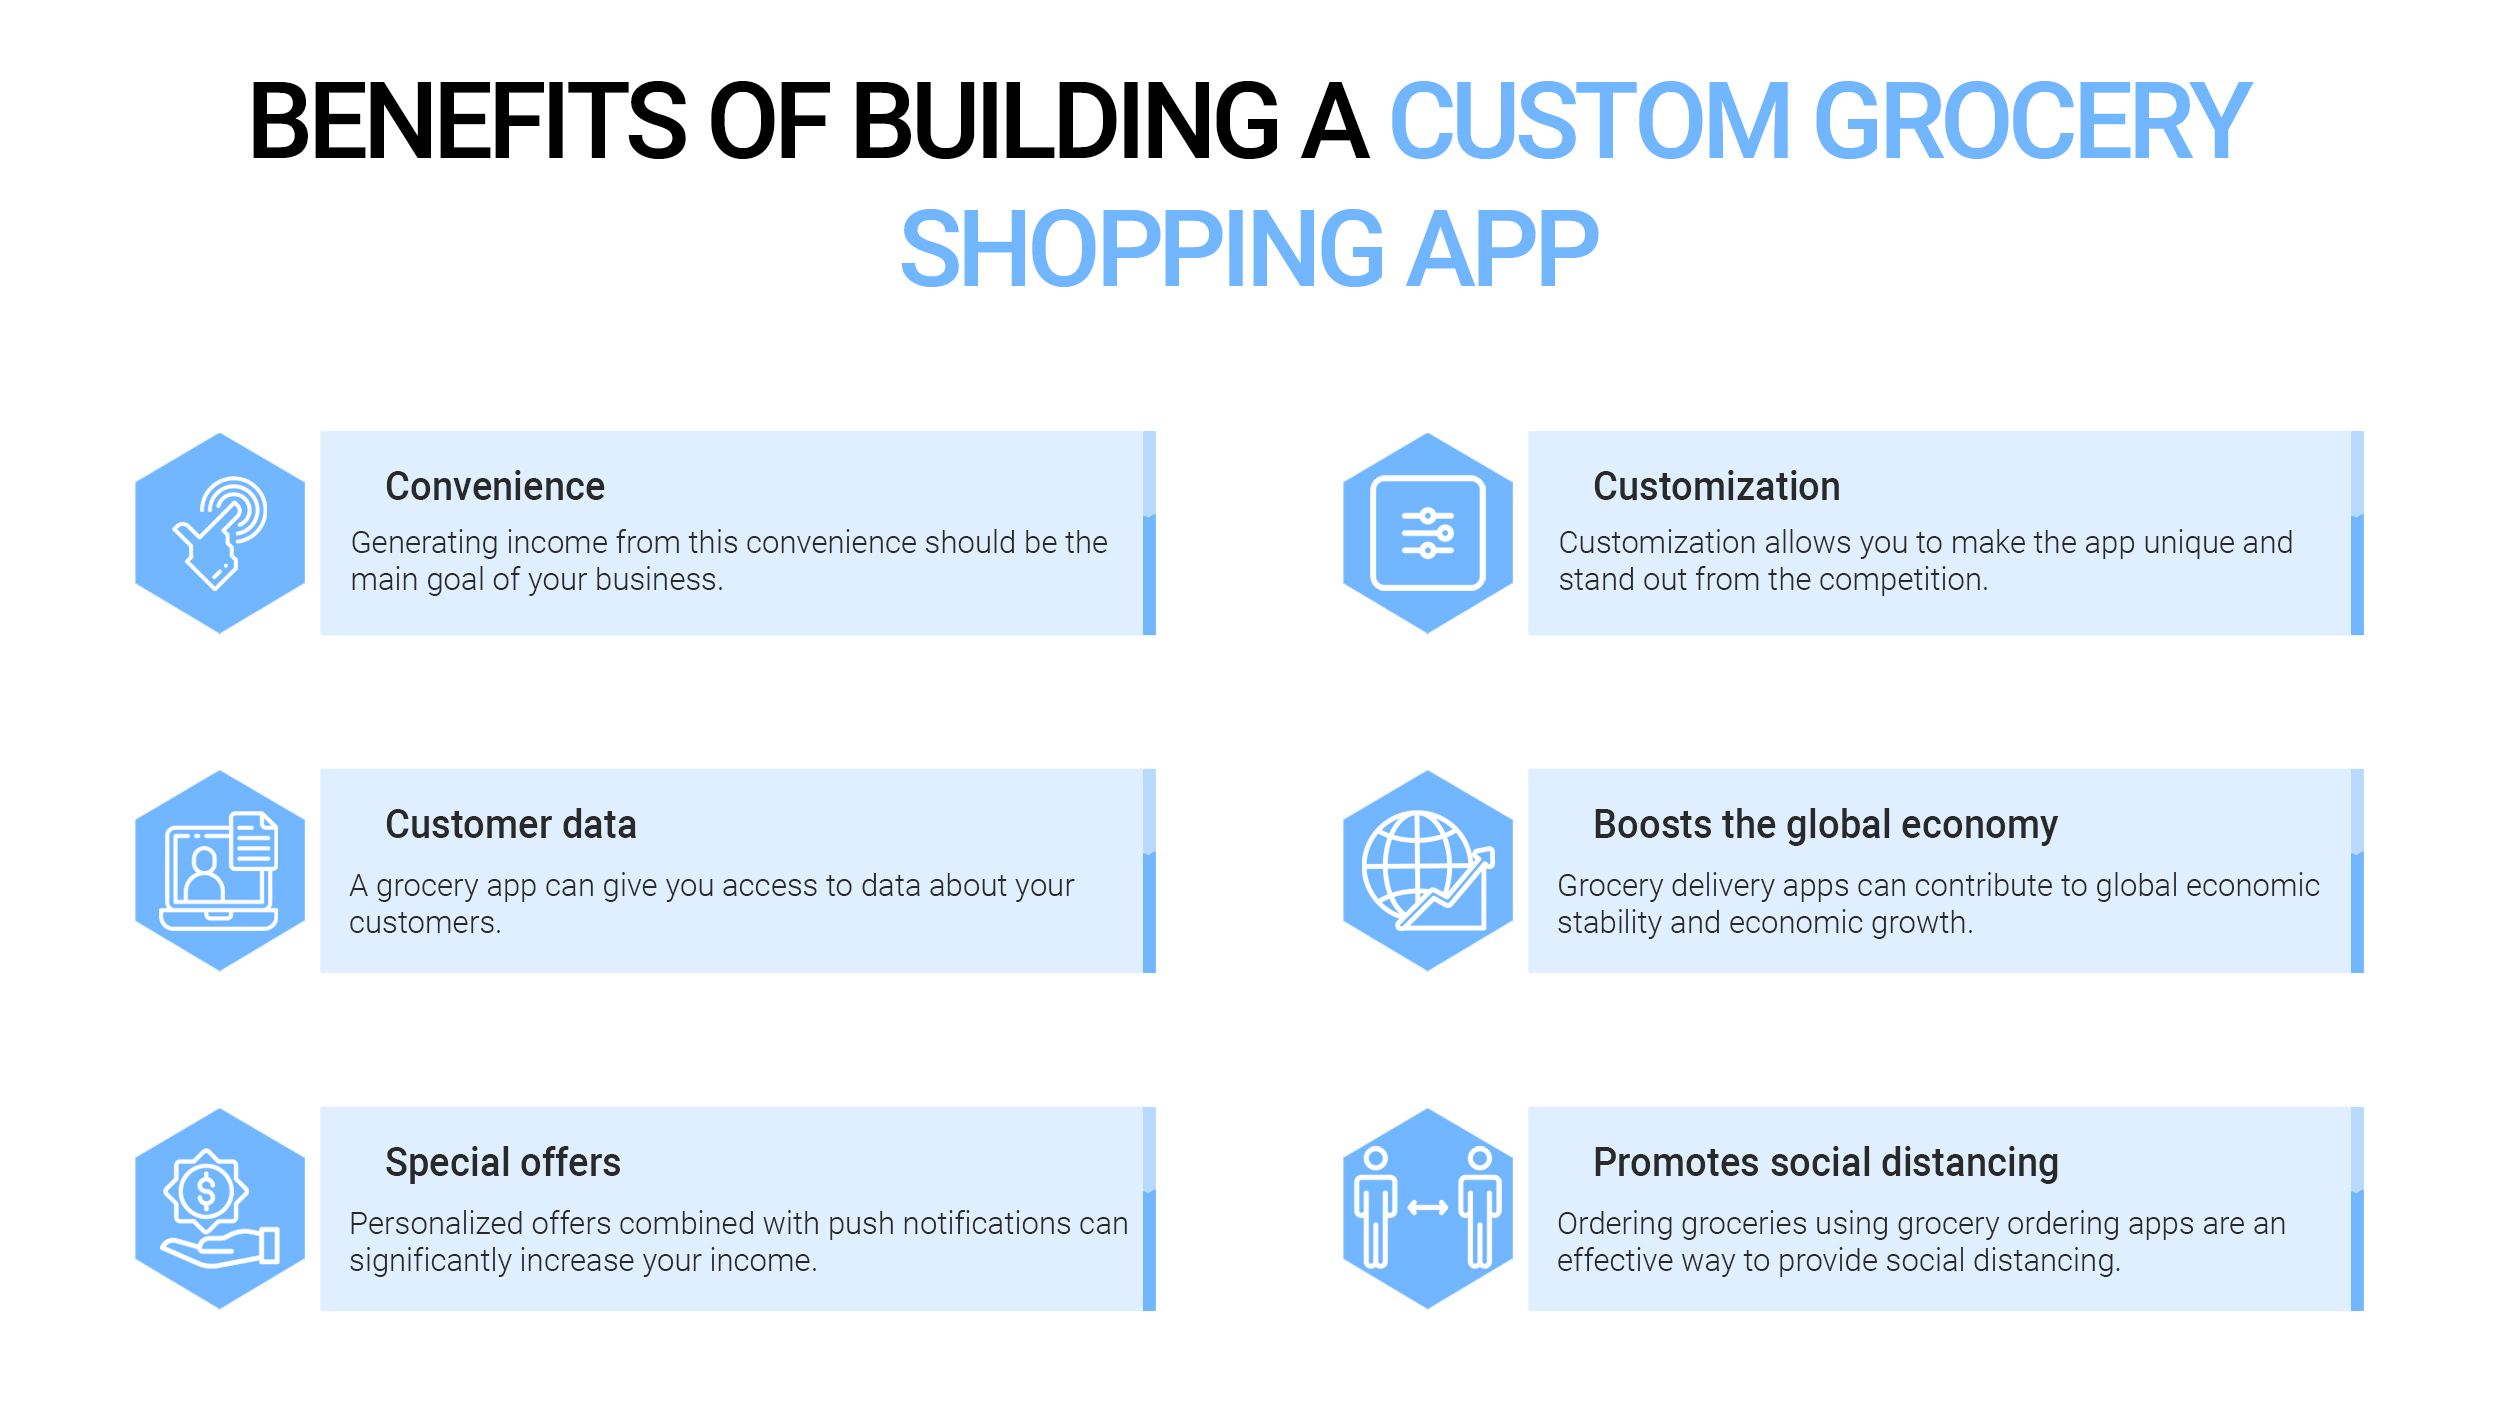 Benefits of building a grocery shopping app